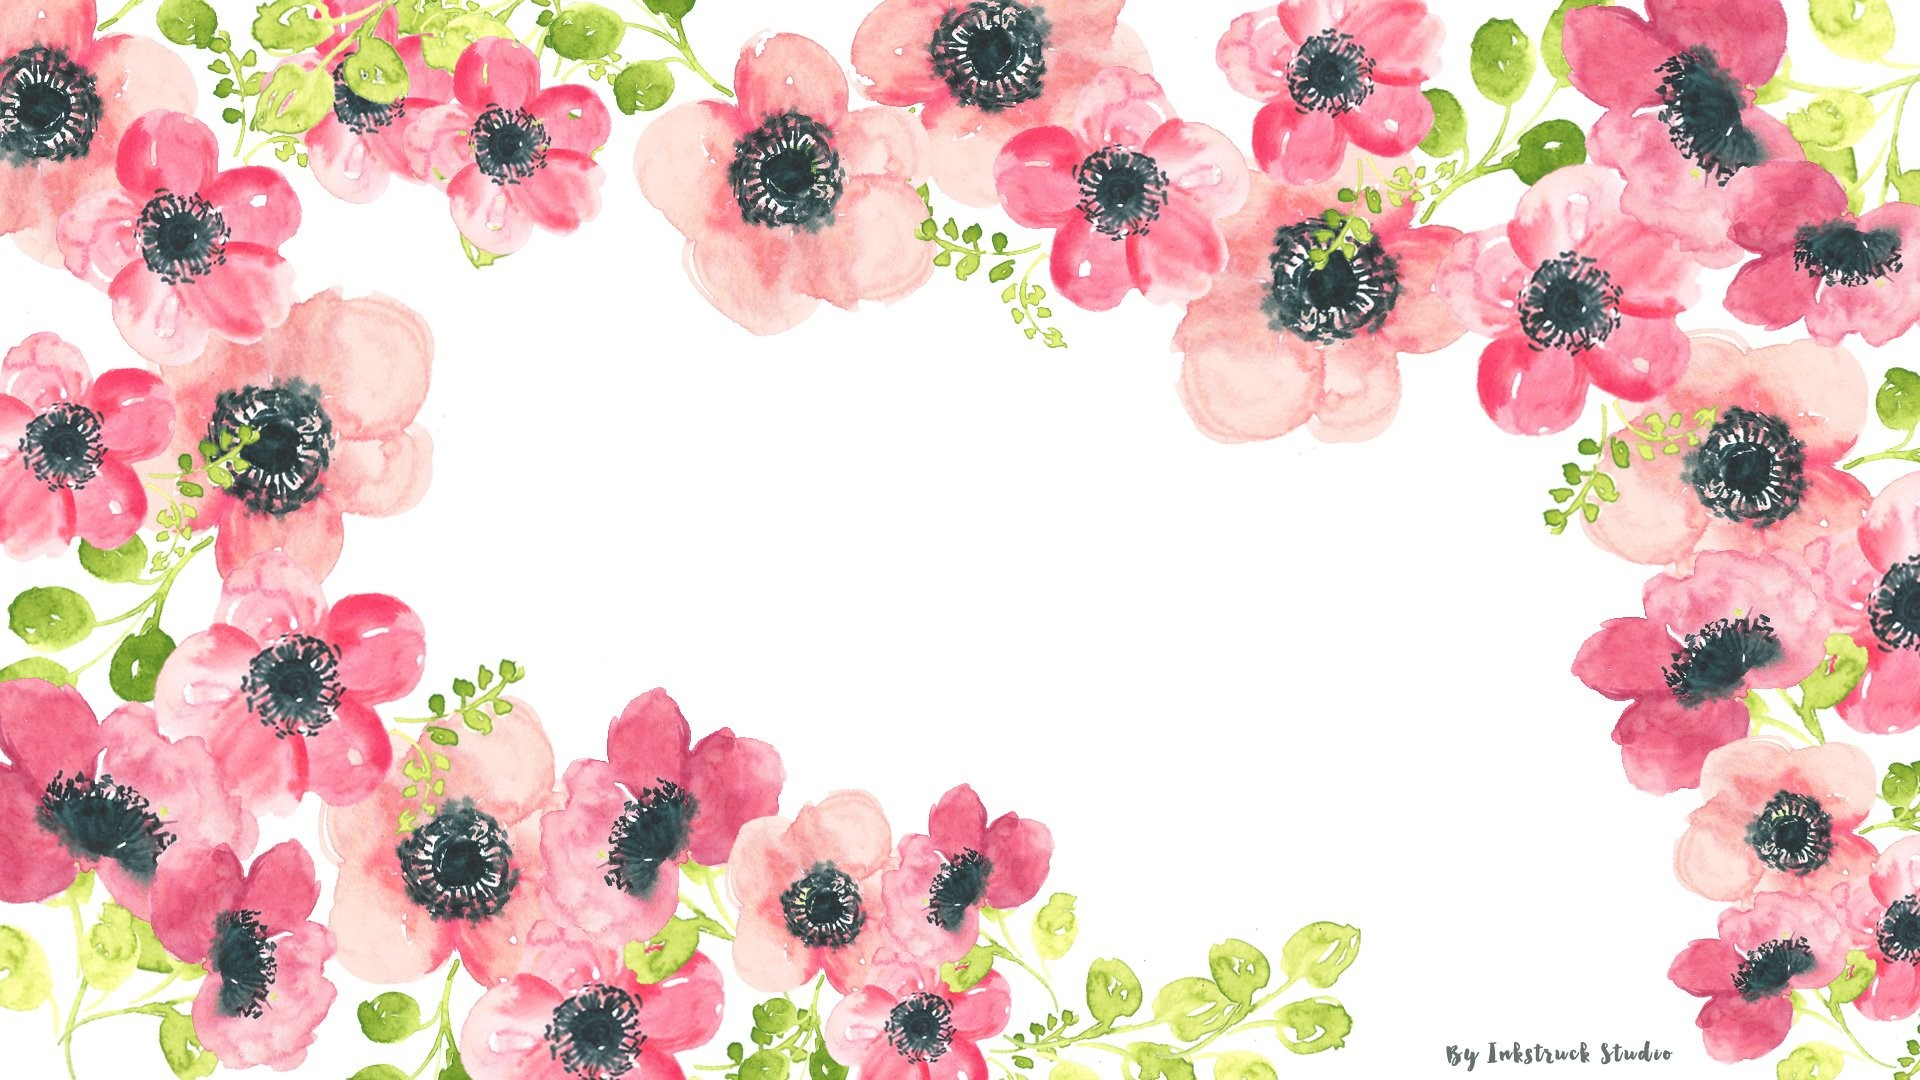 Floral Desktop Backgrounds 51 Images